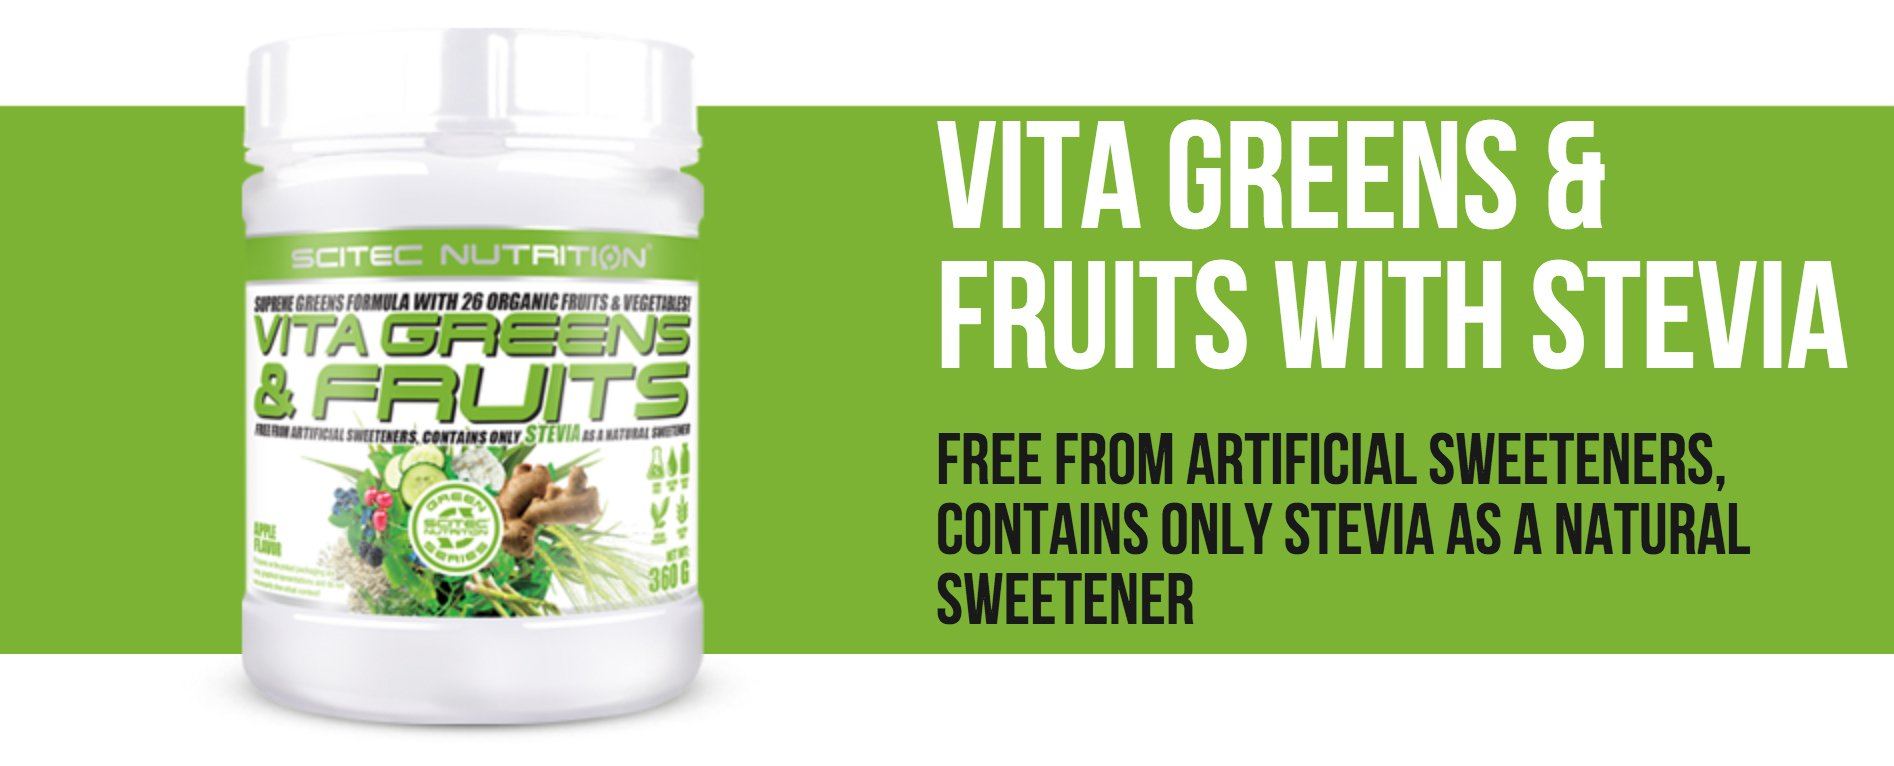 Vita Greens & Fruit 600g - Scitec Nutrition